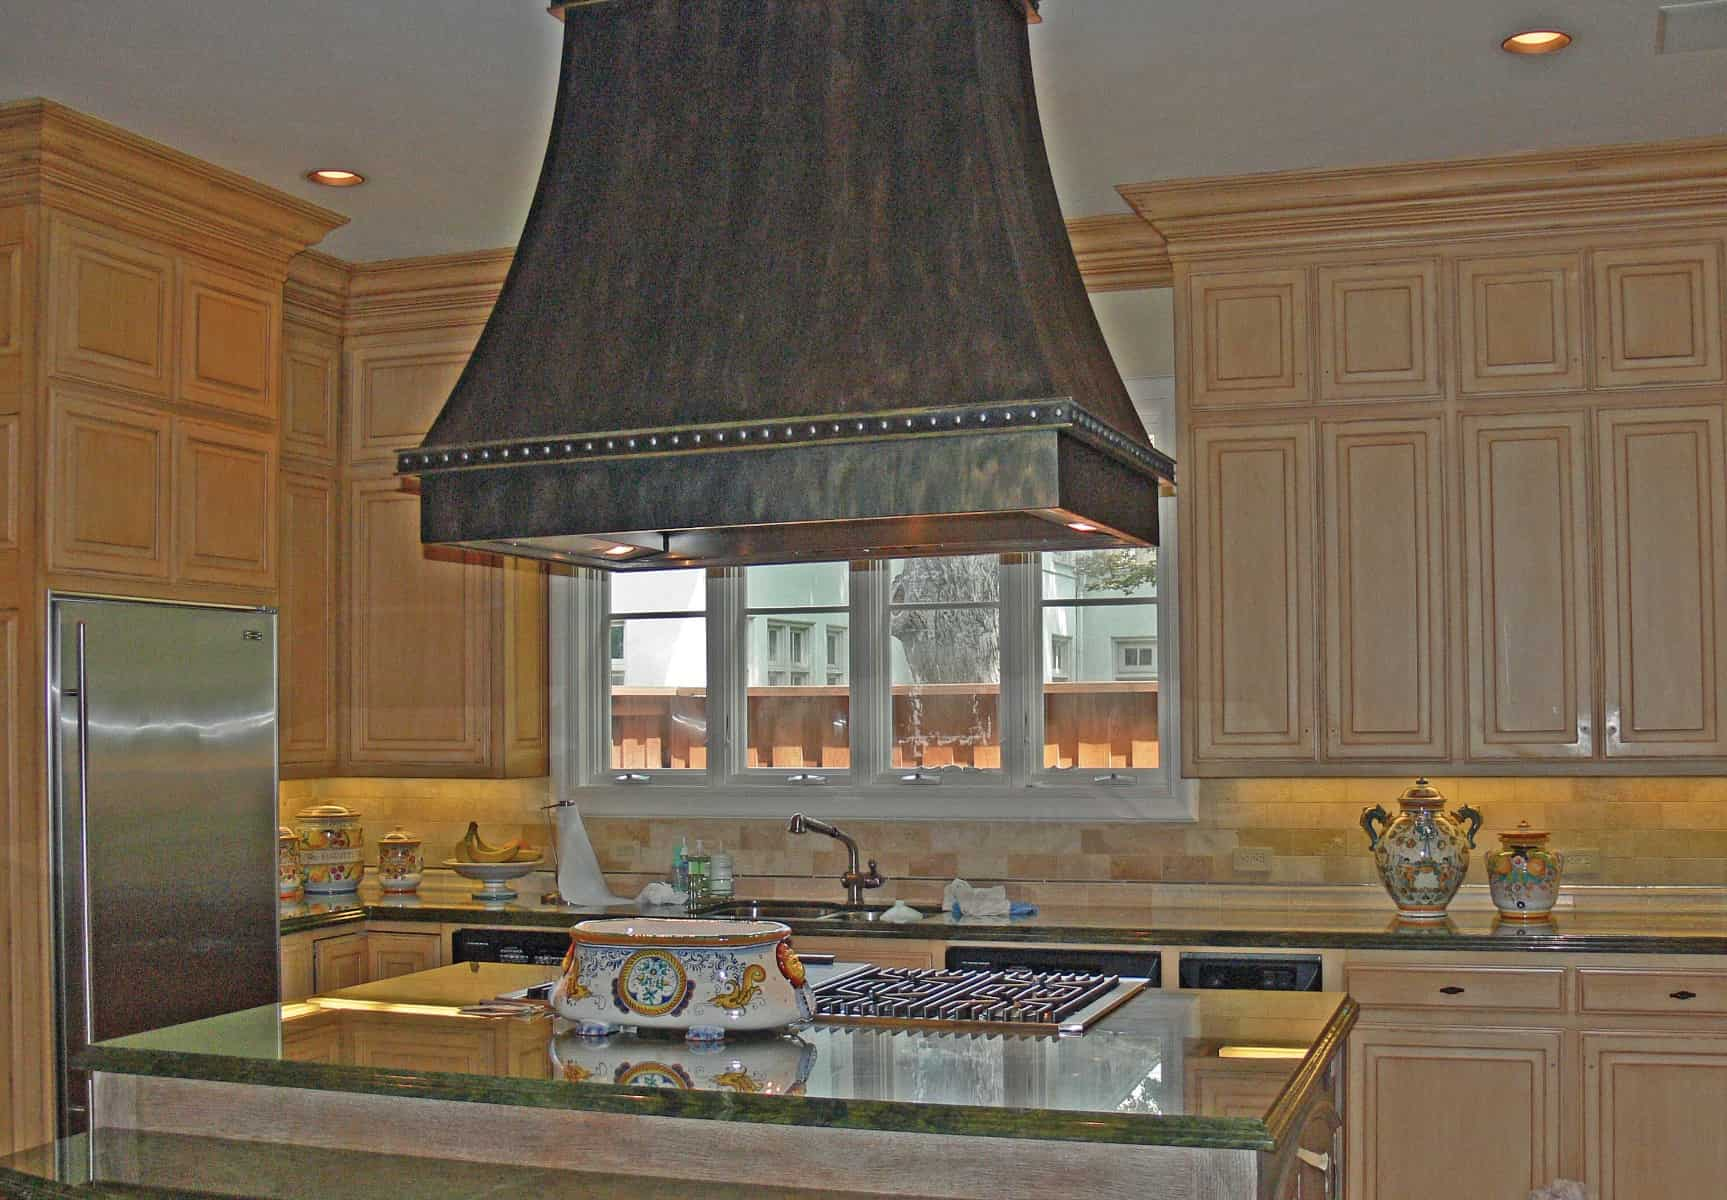 Uses of Exhaust Hoods #2: creative kitchen exhaust hood